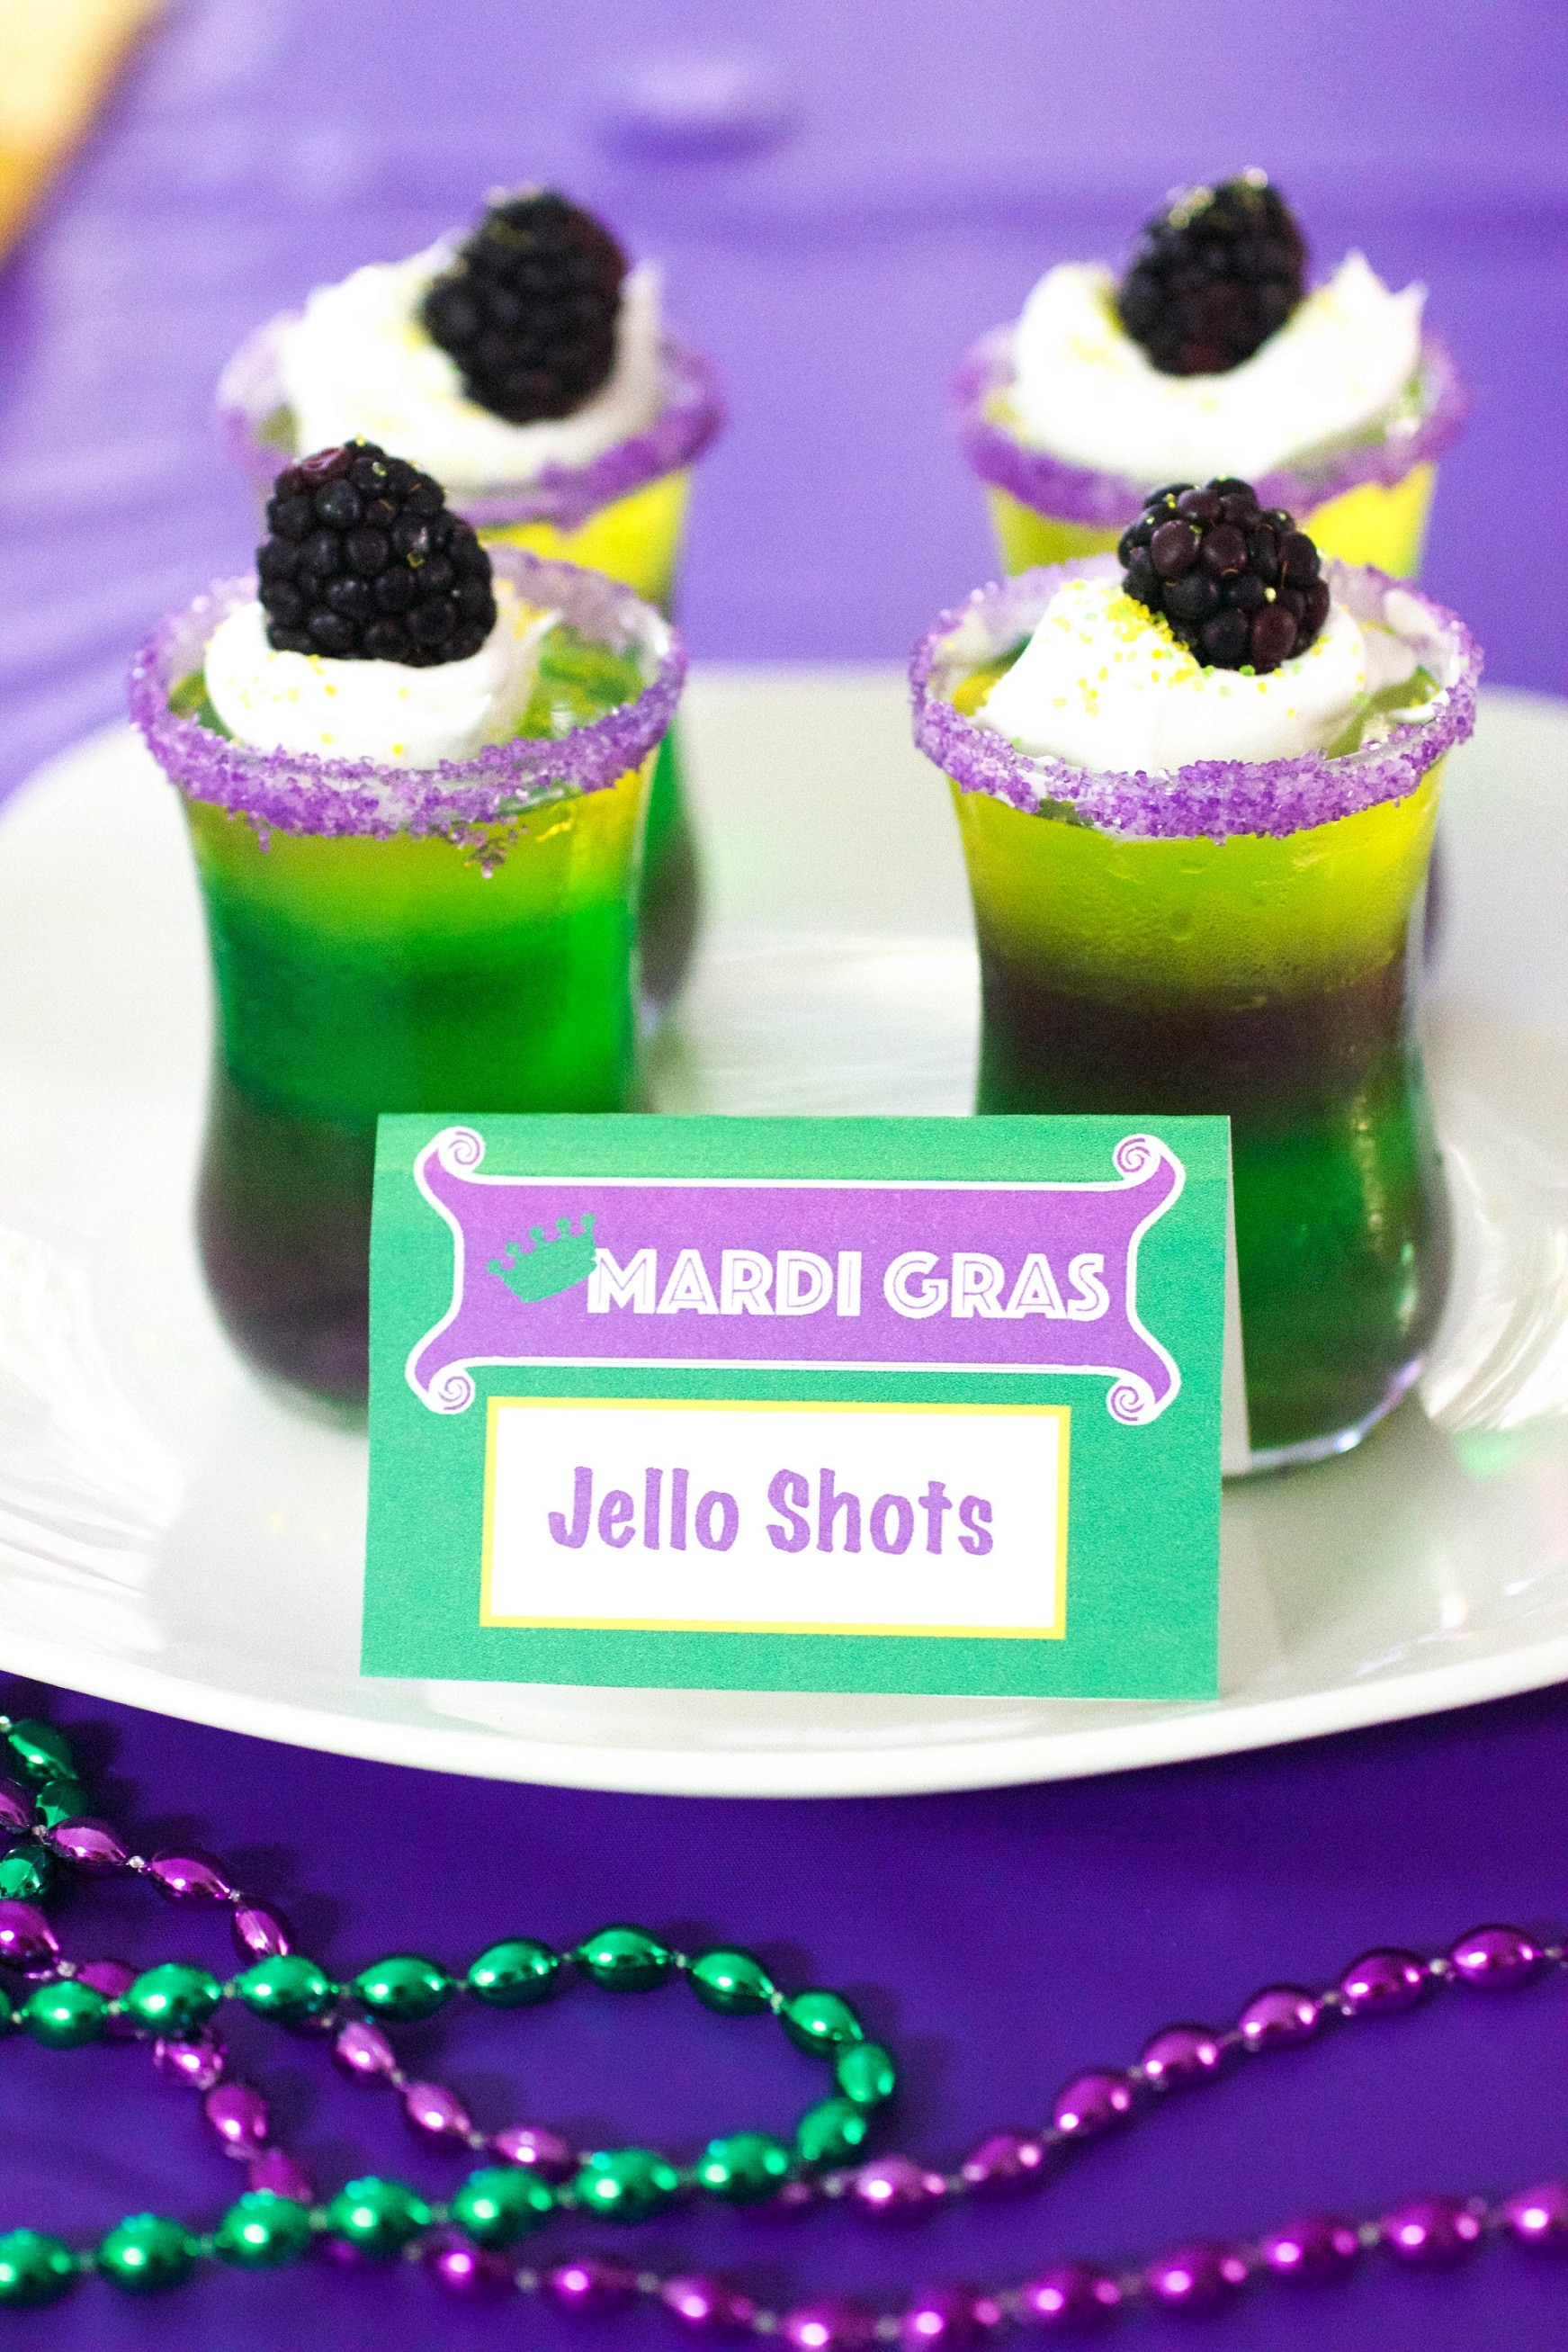 Mardi Gras Foods And Recipes Layered Jello Shooters Mardi Gras Jello Shooters